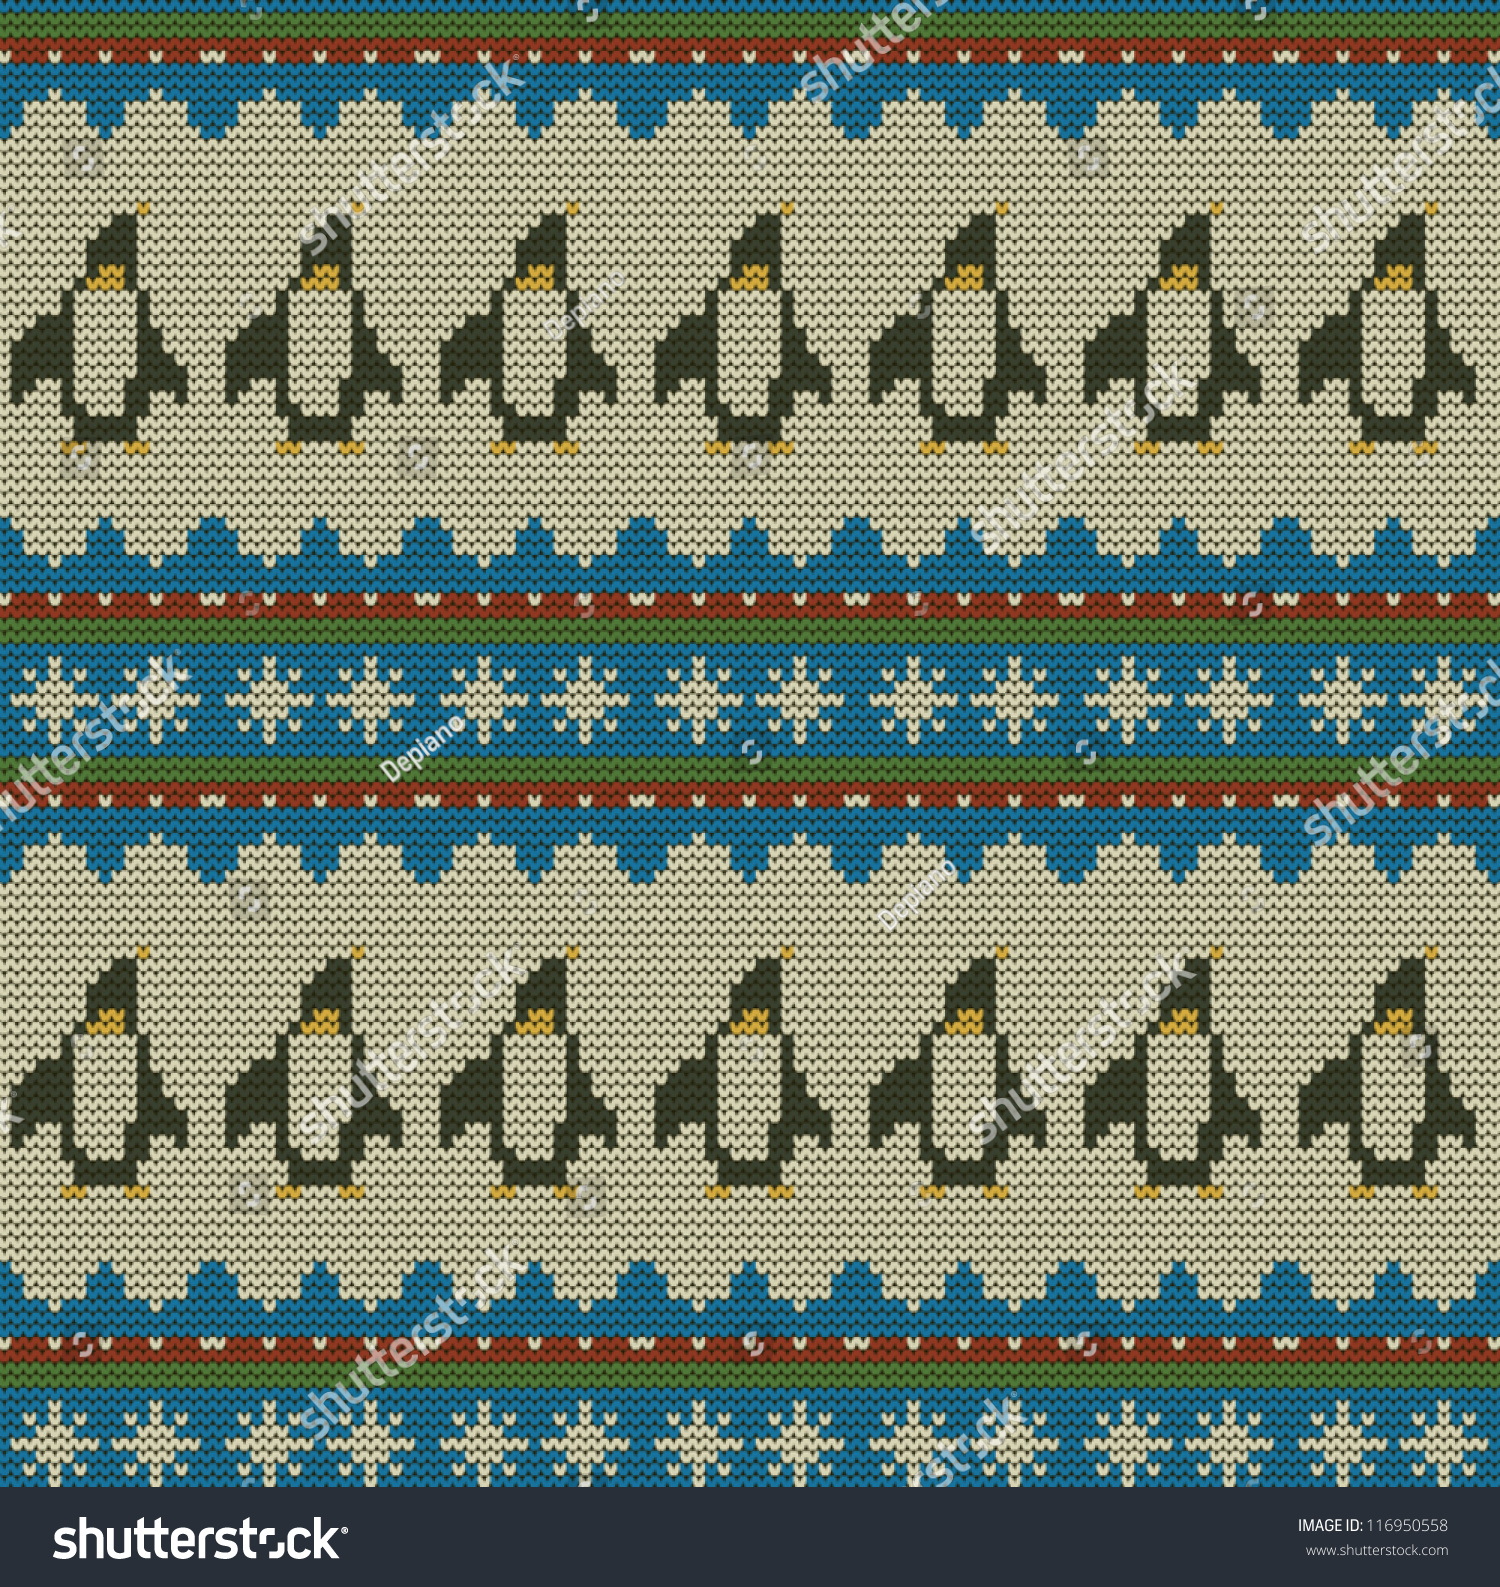 Merry Christmas Seamless Knit Pattern Penguins Stock Vector ...